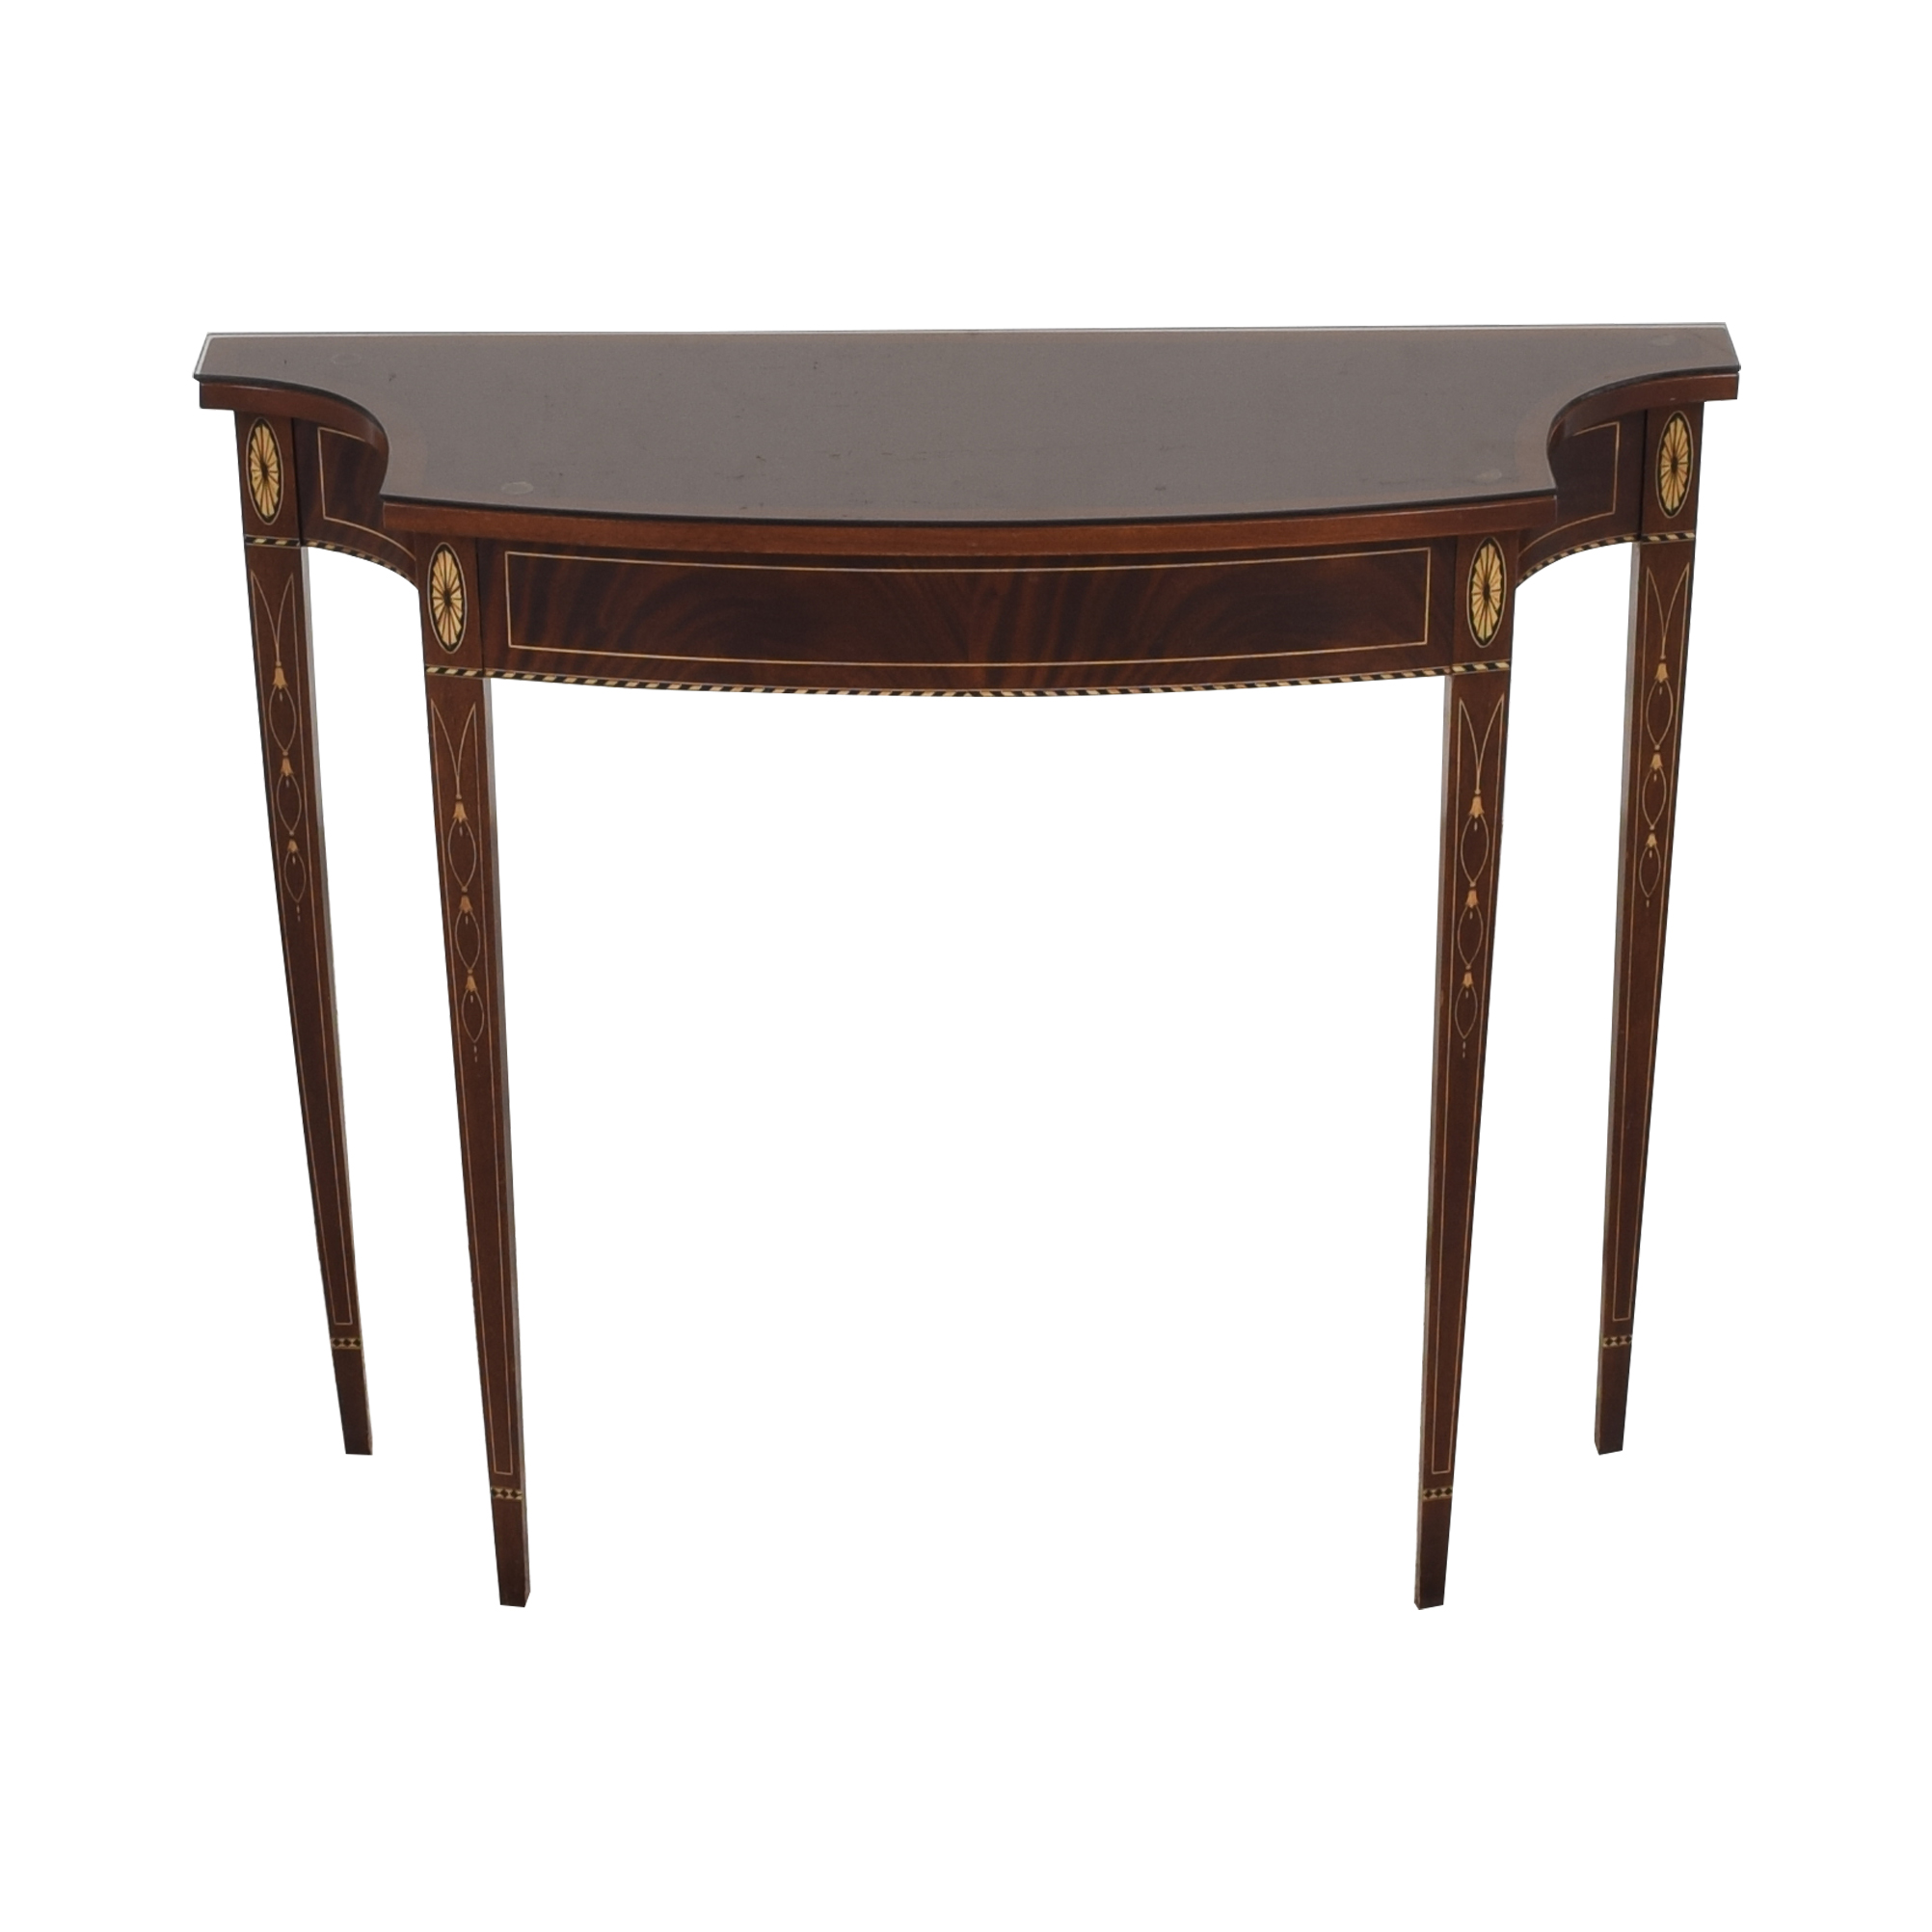 Stickley Furniture Stickley Furniture Entry Table pa